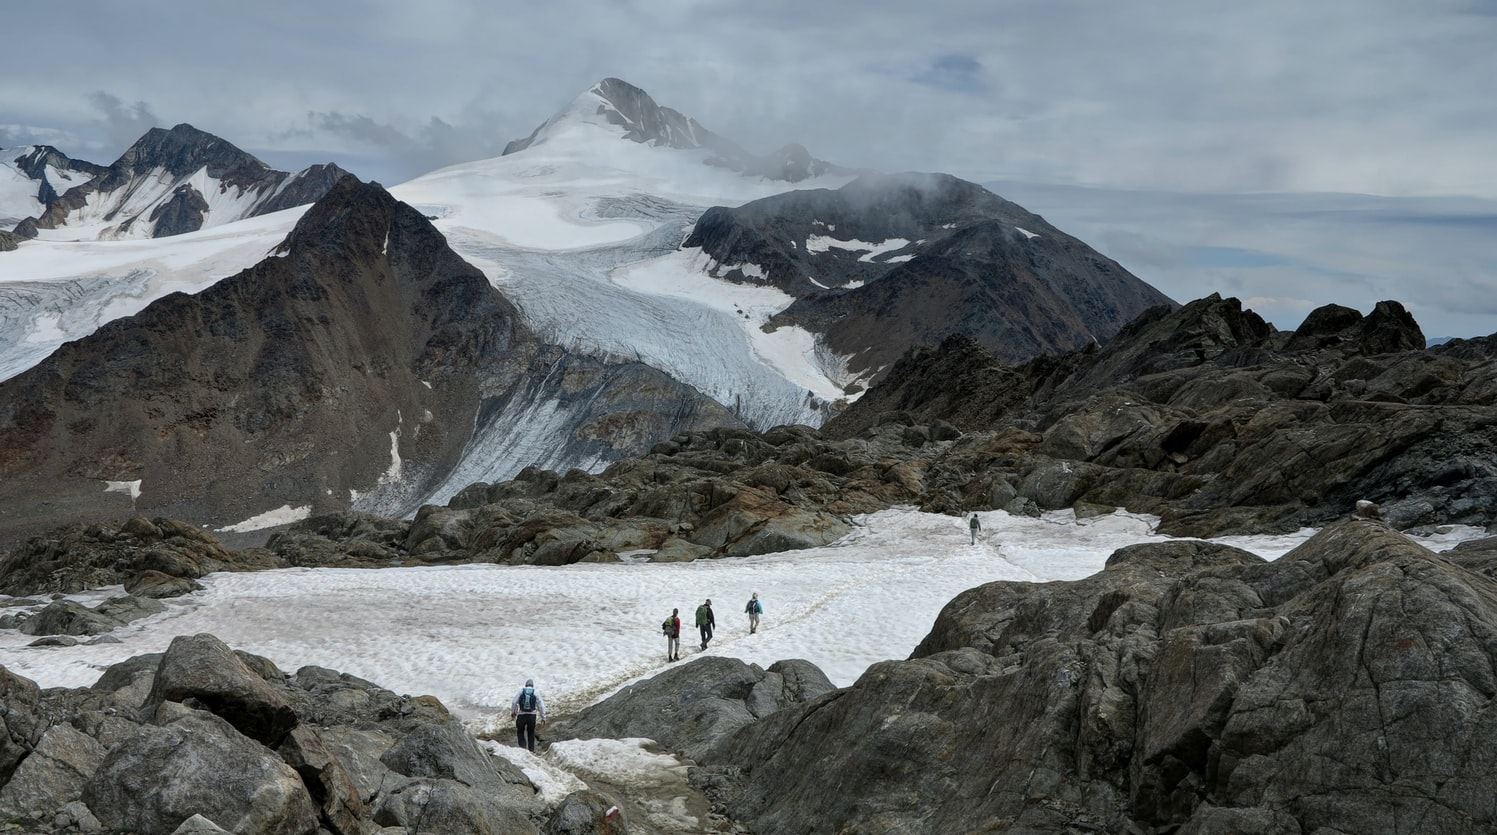 Aletsch Glacier Panorama Trail, Best Hiking Places in Switzerland